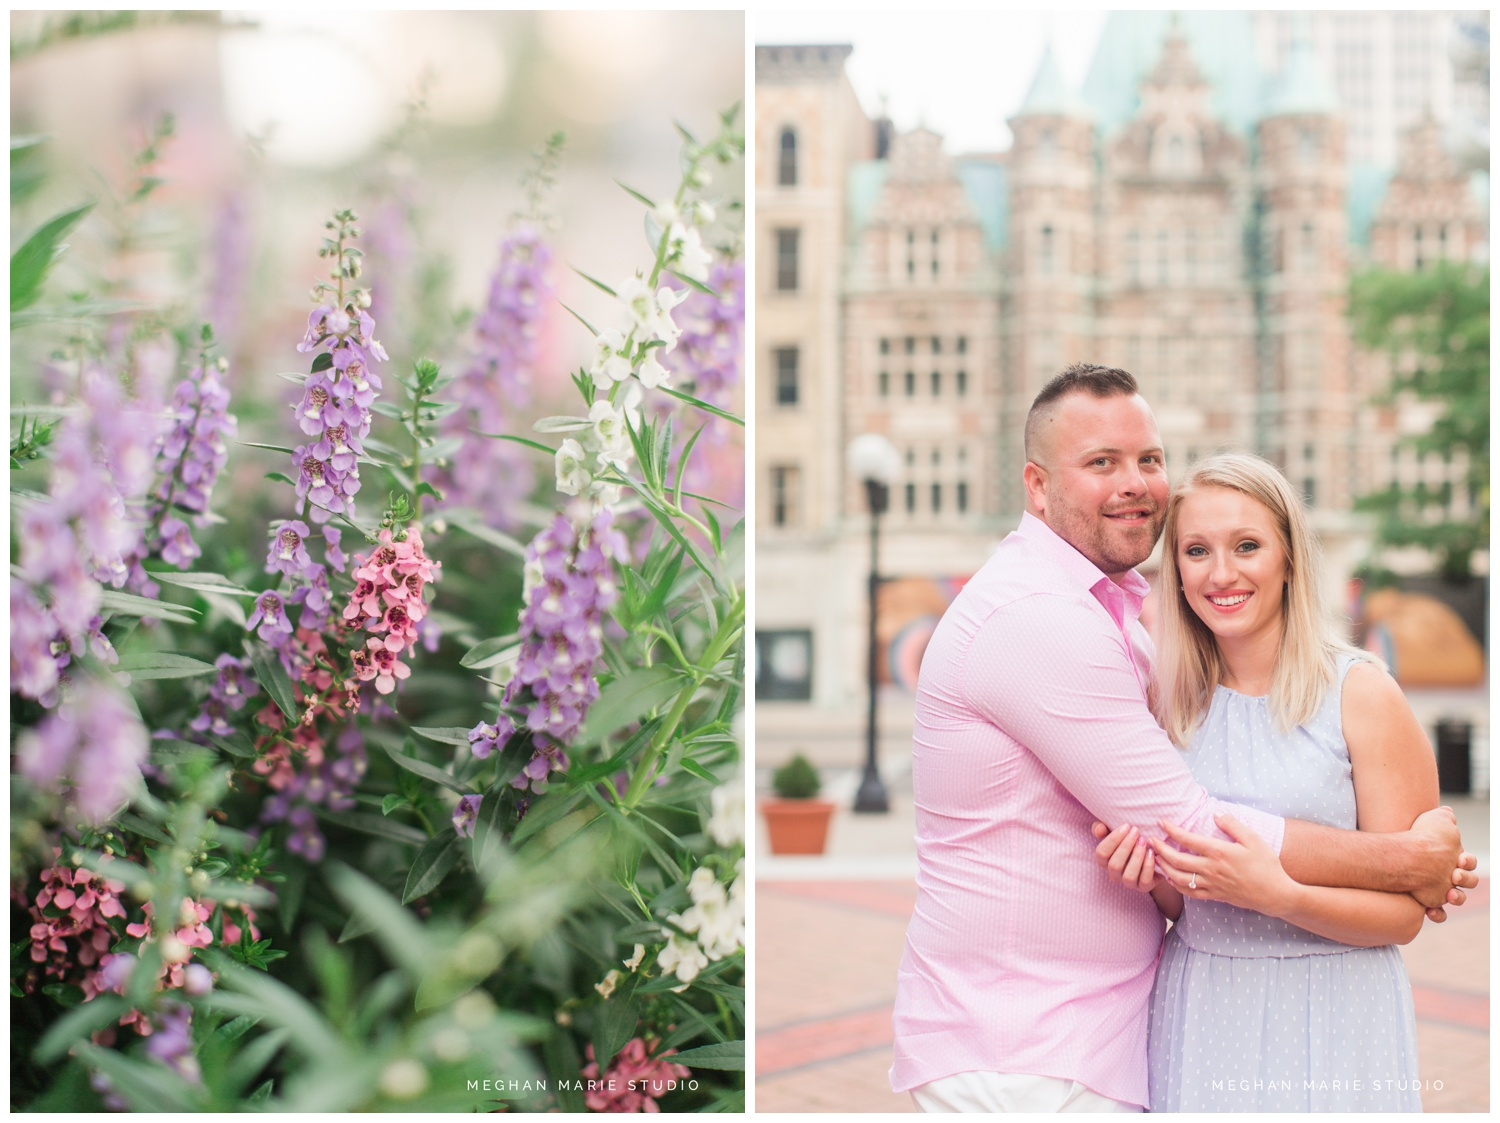 meghan marie studio ohio dayton troy photographer wedding photography engagement alex kaila family honeycreek preserve champagne downtown courthouse urban rural earth toned nature woods barn country city stone fountain elegant_0456.jpg